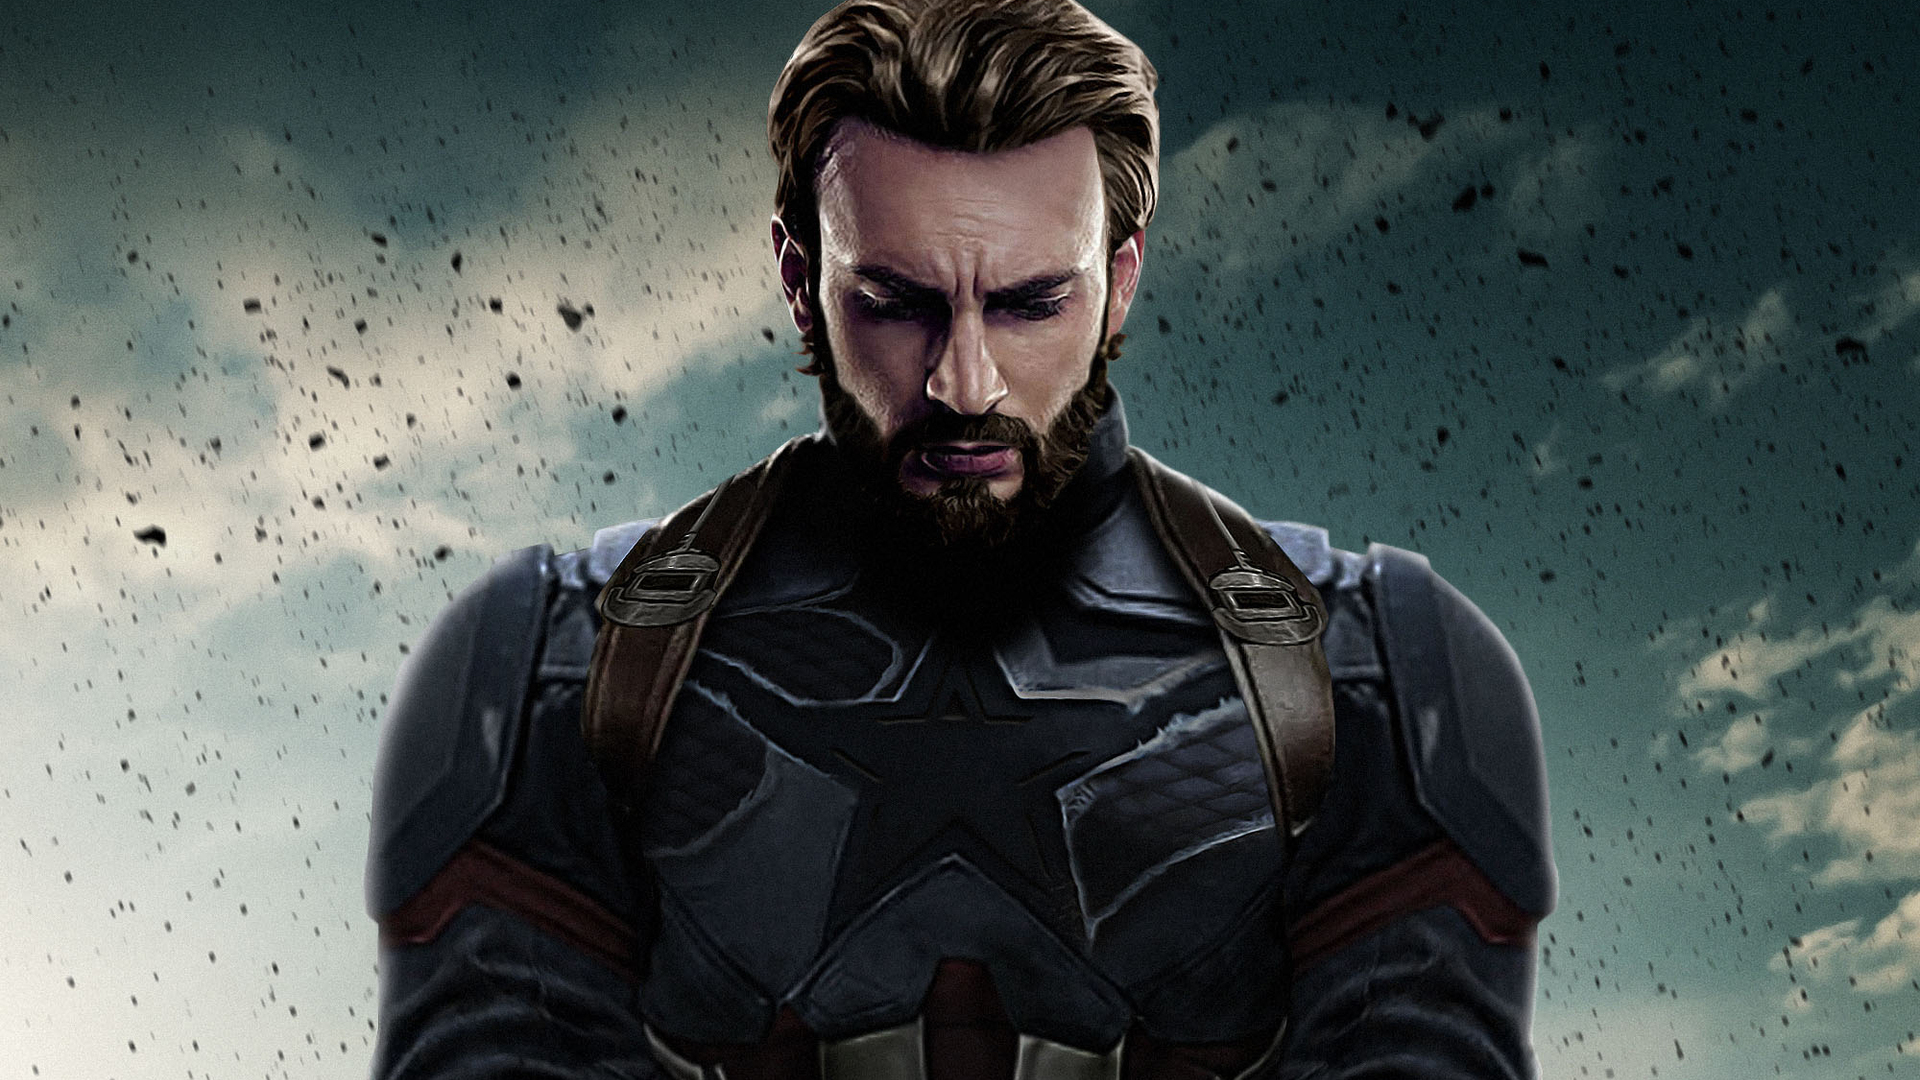 1920x1080 captain america avengers infinity war 2018 laptop full hd